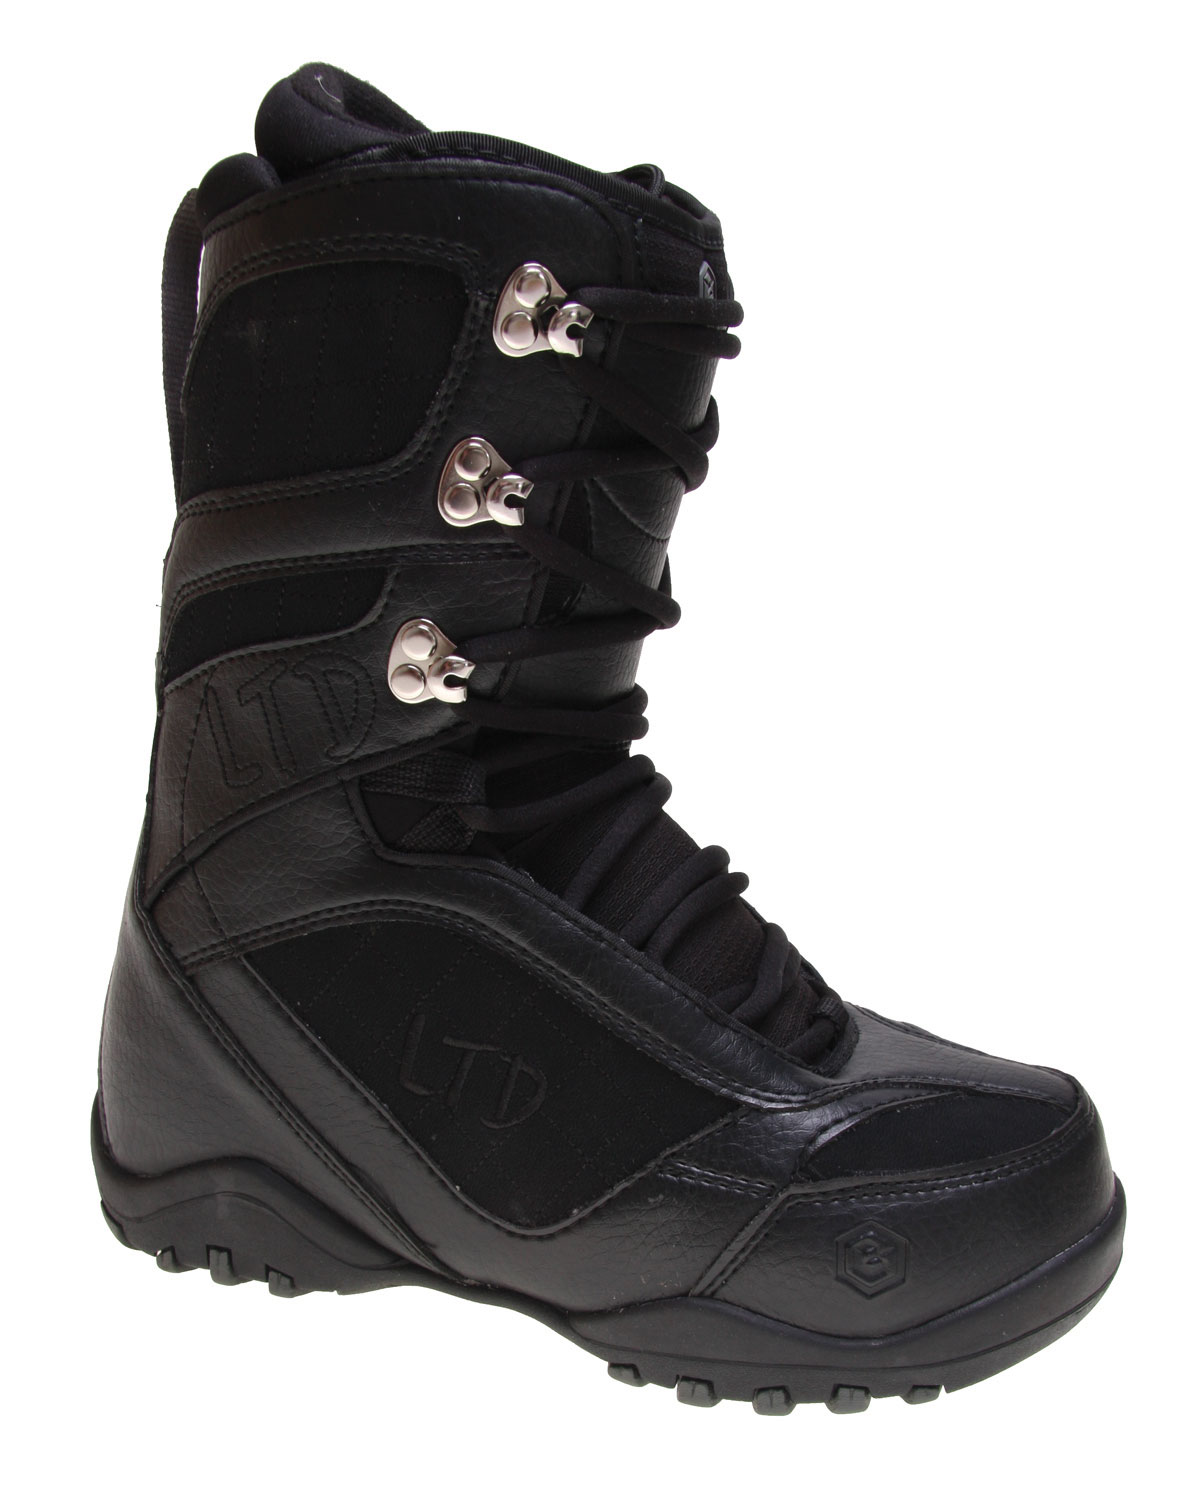 Snowboard The popular LTD Classic Snowboard Boot for men gets an upgrade that amps up its affordable performance. The latest version of the Classic snowboard boot from LTD boasts an articulated lace-up insert with lightweight support in the molded EVA footbed. The Classic's double-dense outer sole is contoured for a low profile. If you are looking for a snowboard boot with a great work ethic and a bevy of rider-inspired features for a price that leaves you enough to pay for a ski pass, why not stick with the Classic?Key Features of The LTD Classic Snowboard Boots: PL Articulated Lace Up Liner with EVA Footbed Low Profile Dual Density Outsole Soft Tricot Lacing Tongue Gusset with Micro Injected Pull Tab Flex Zone Tongue Upgraded Materials - $59.95